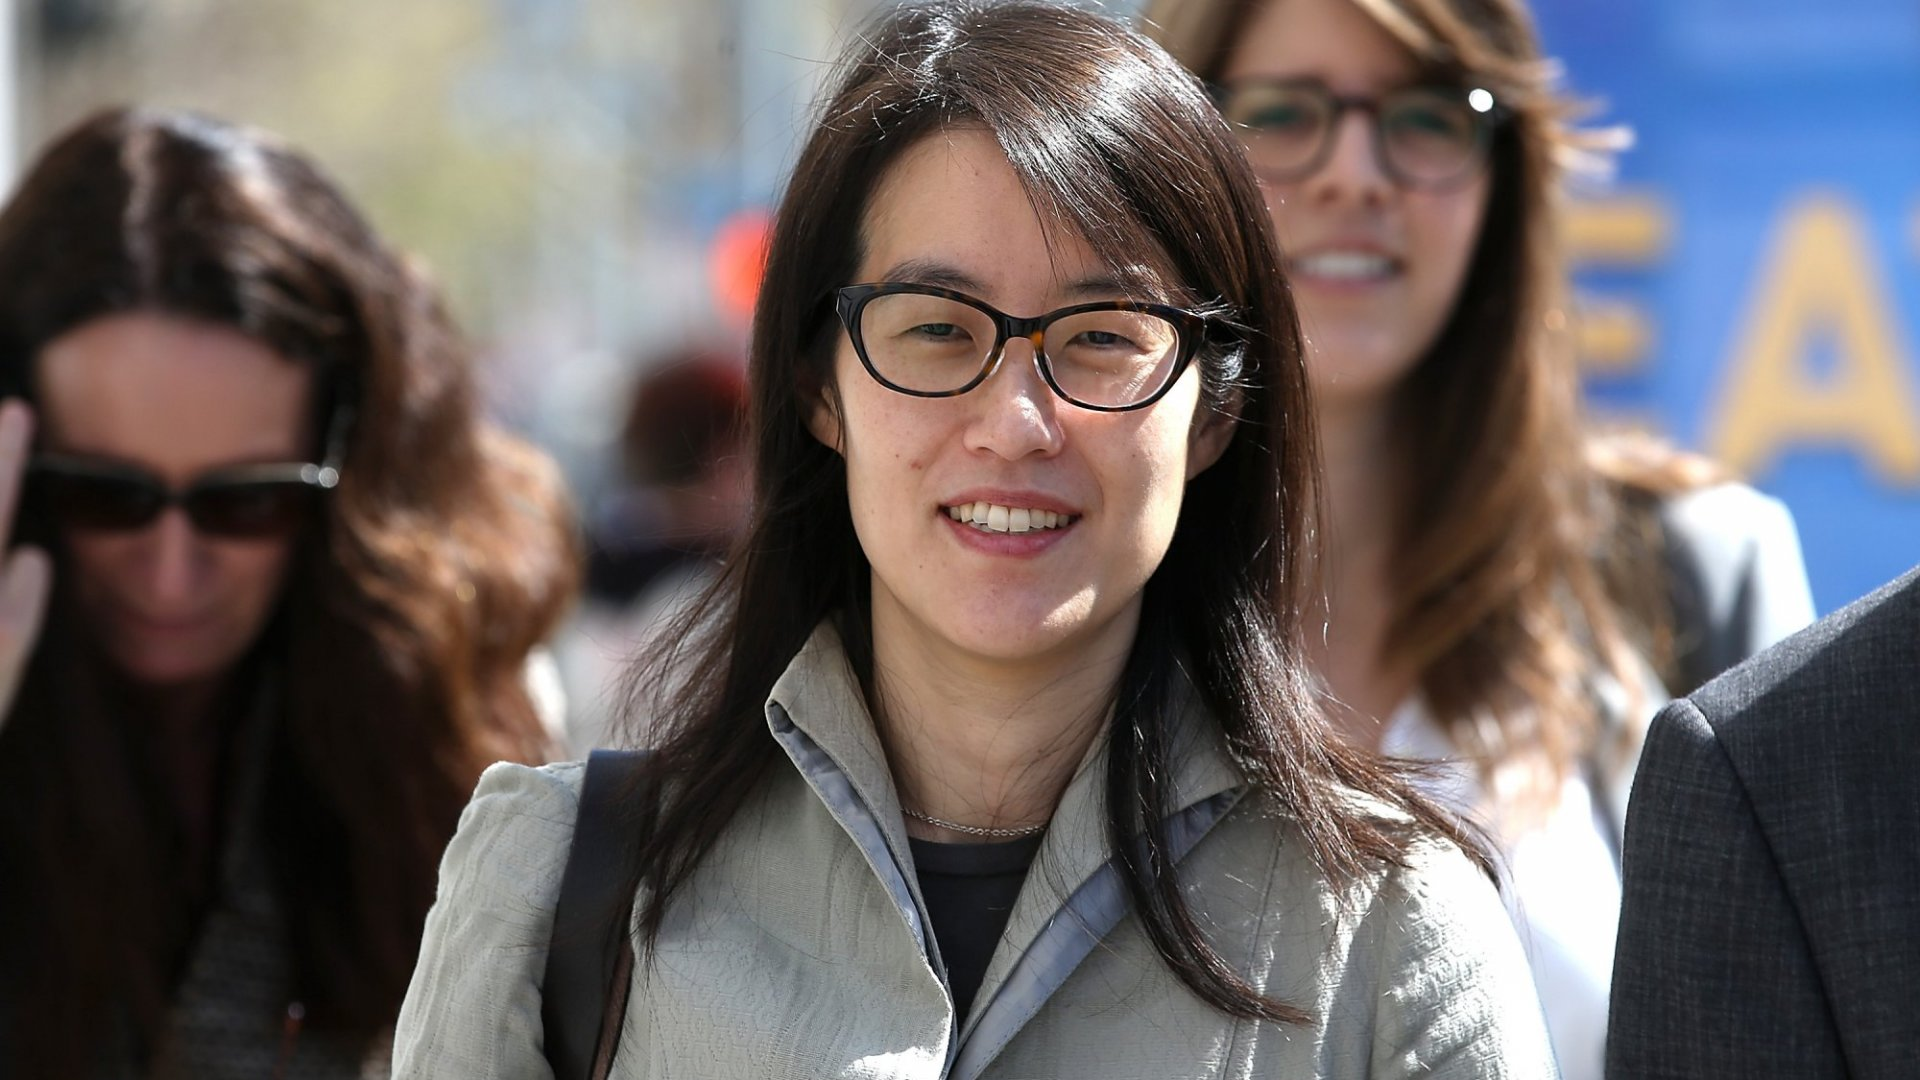 Female Tech Workers Raised Money to Buy a Newspaper Ad Thanking Ellen Pao